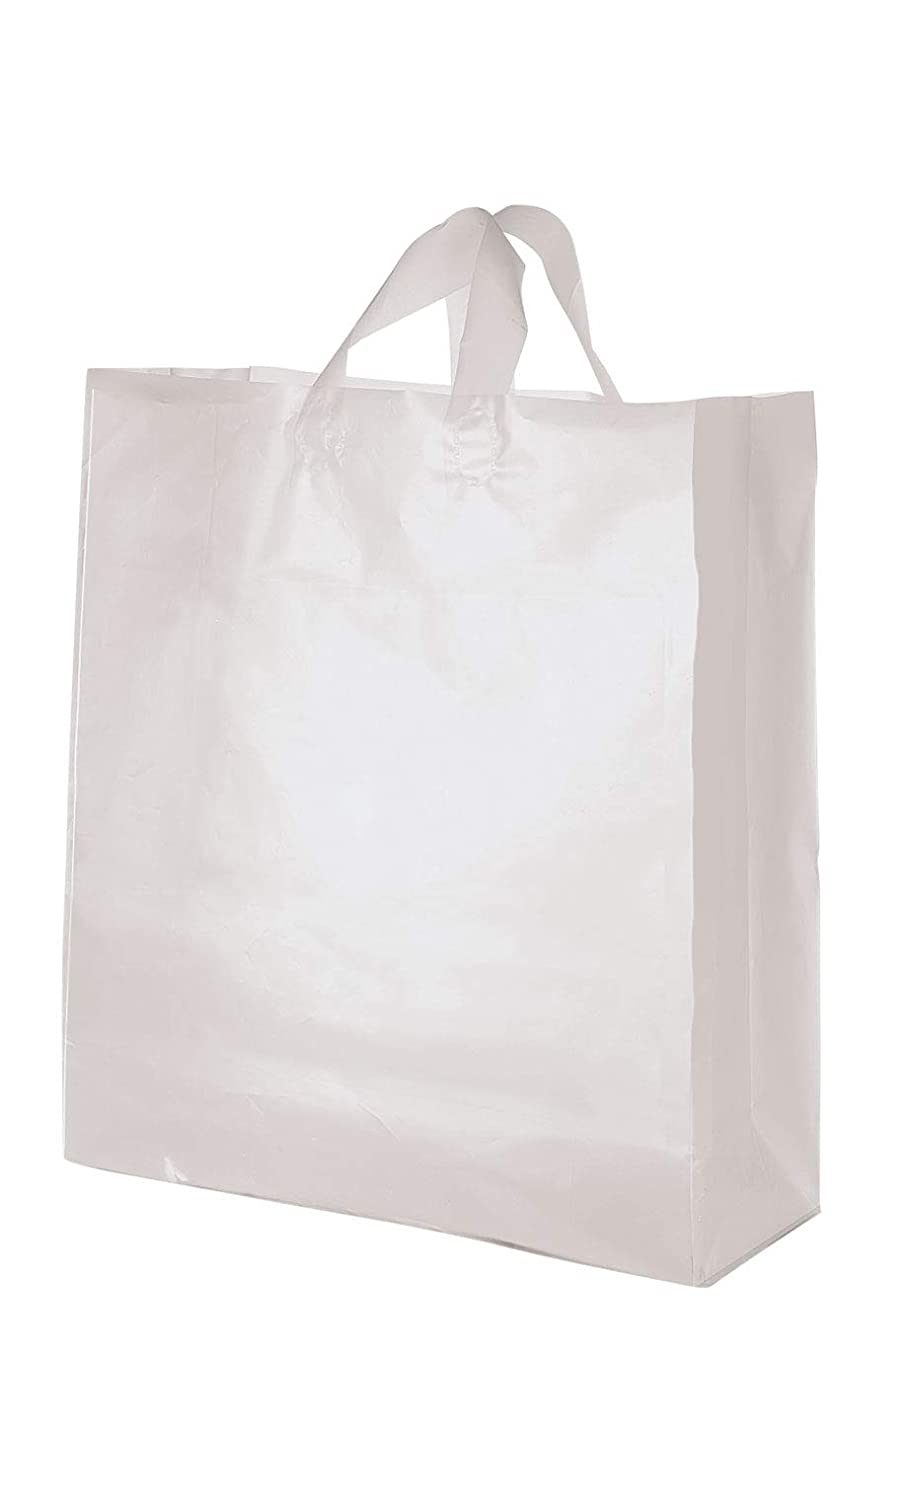 Frosted Heavy Plastic Gift  Shopping Bags Handle 16x6x12 Black Lot of 100 New